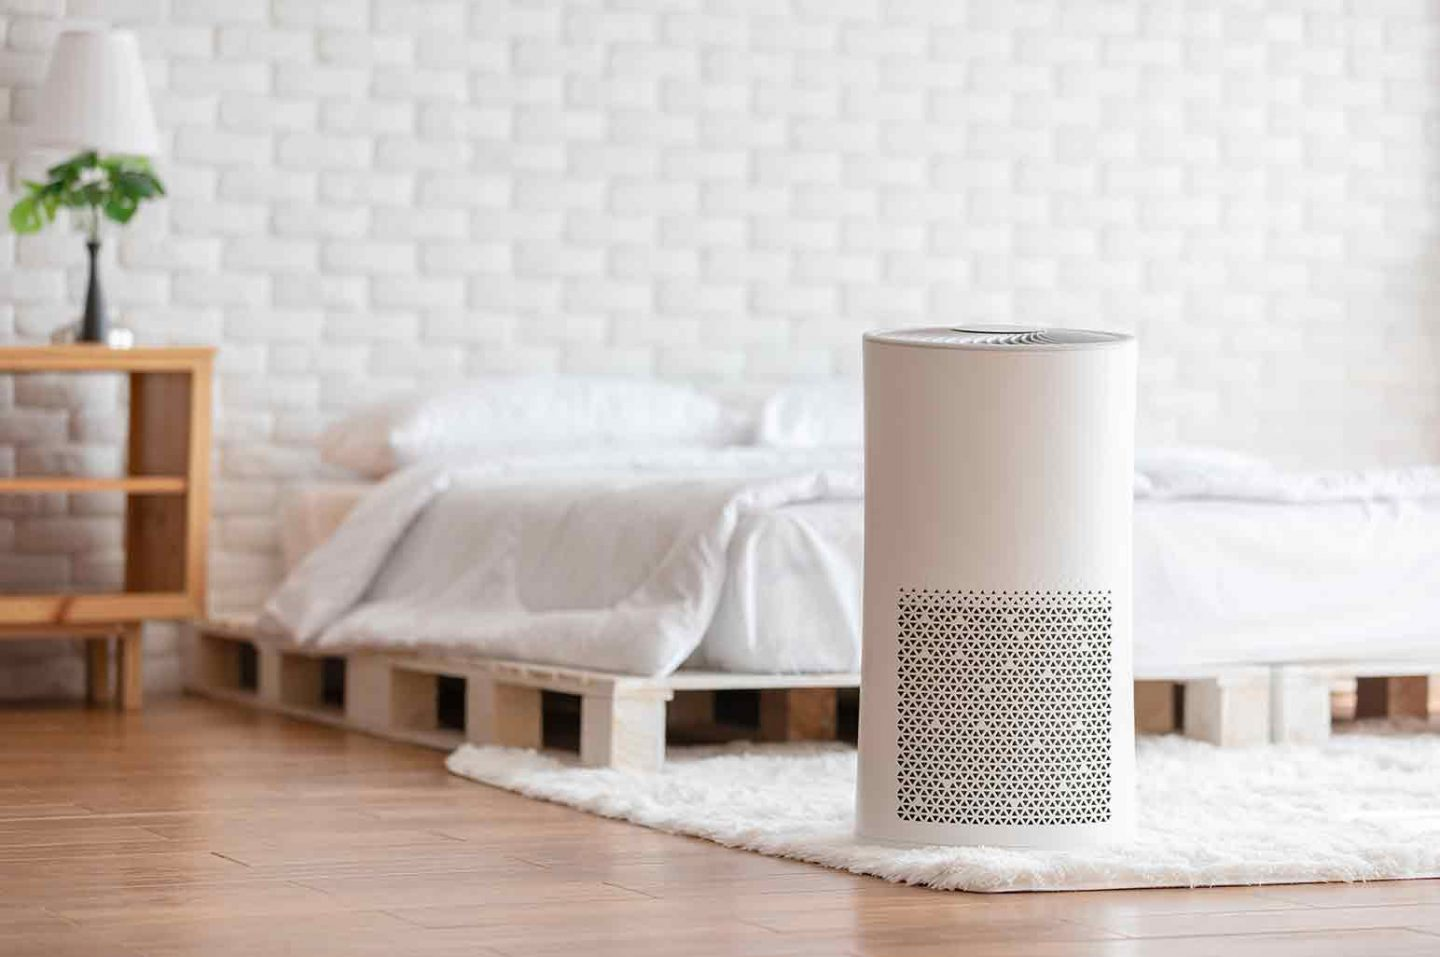 Qualities to Look For in an Air Purifier